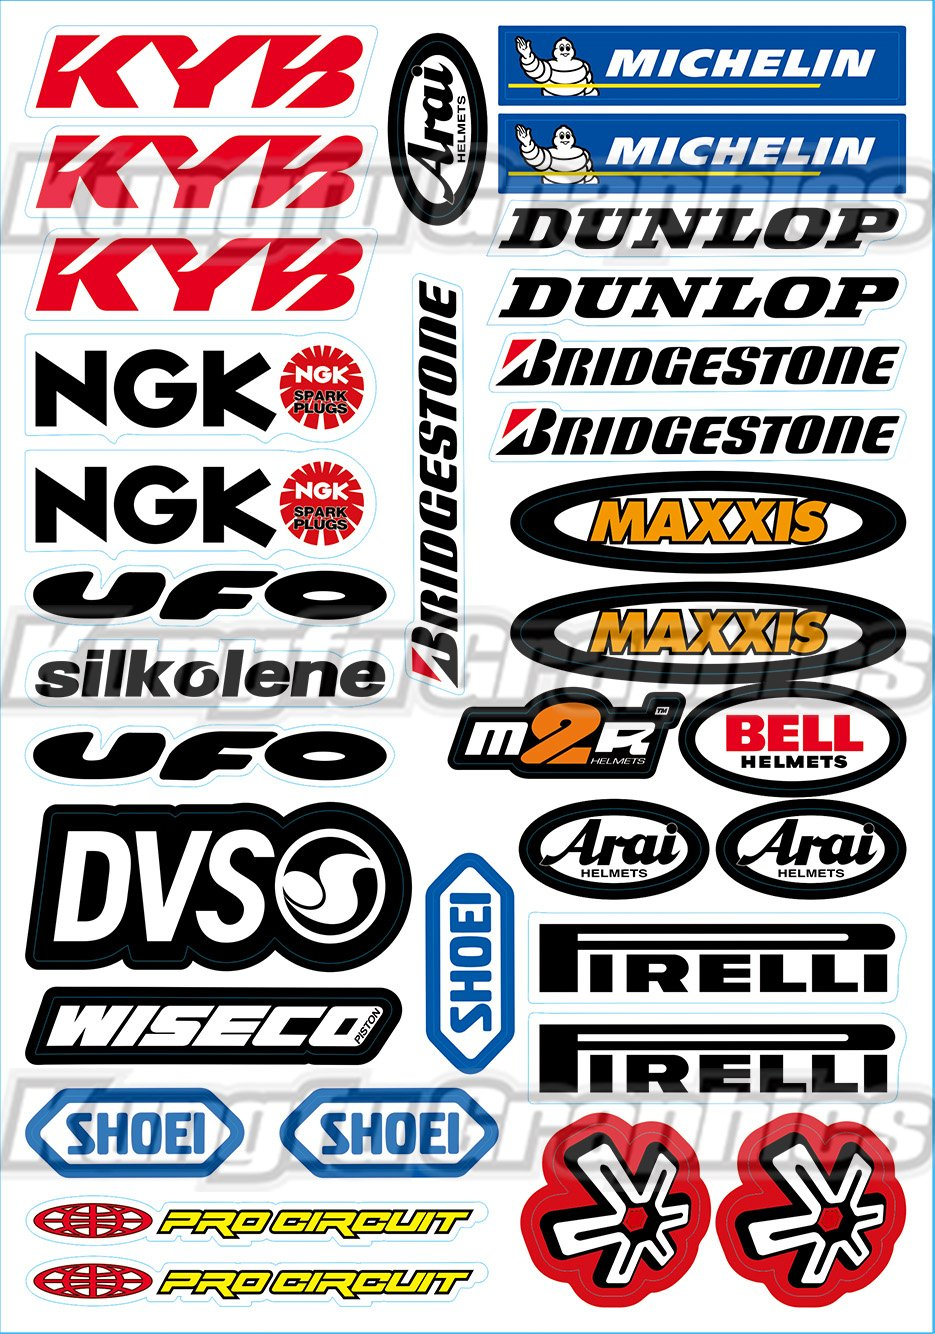 Kungfu Graphics Yamaha Sponsor Logo Racing Sticker Sheet Universal (7.2x 10.2 inch), Red